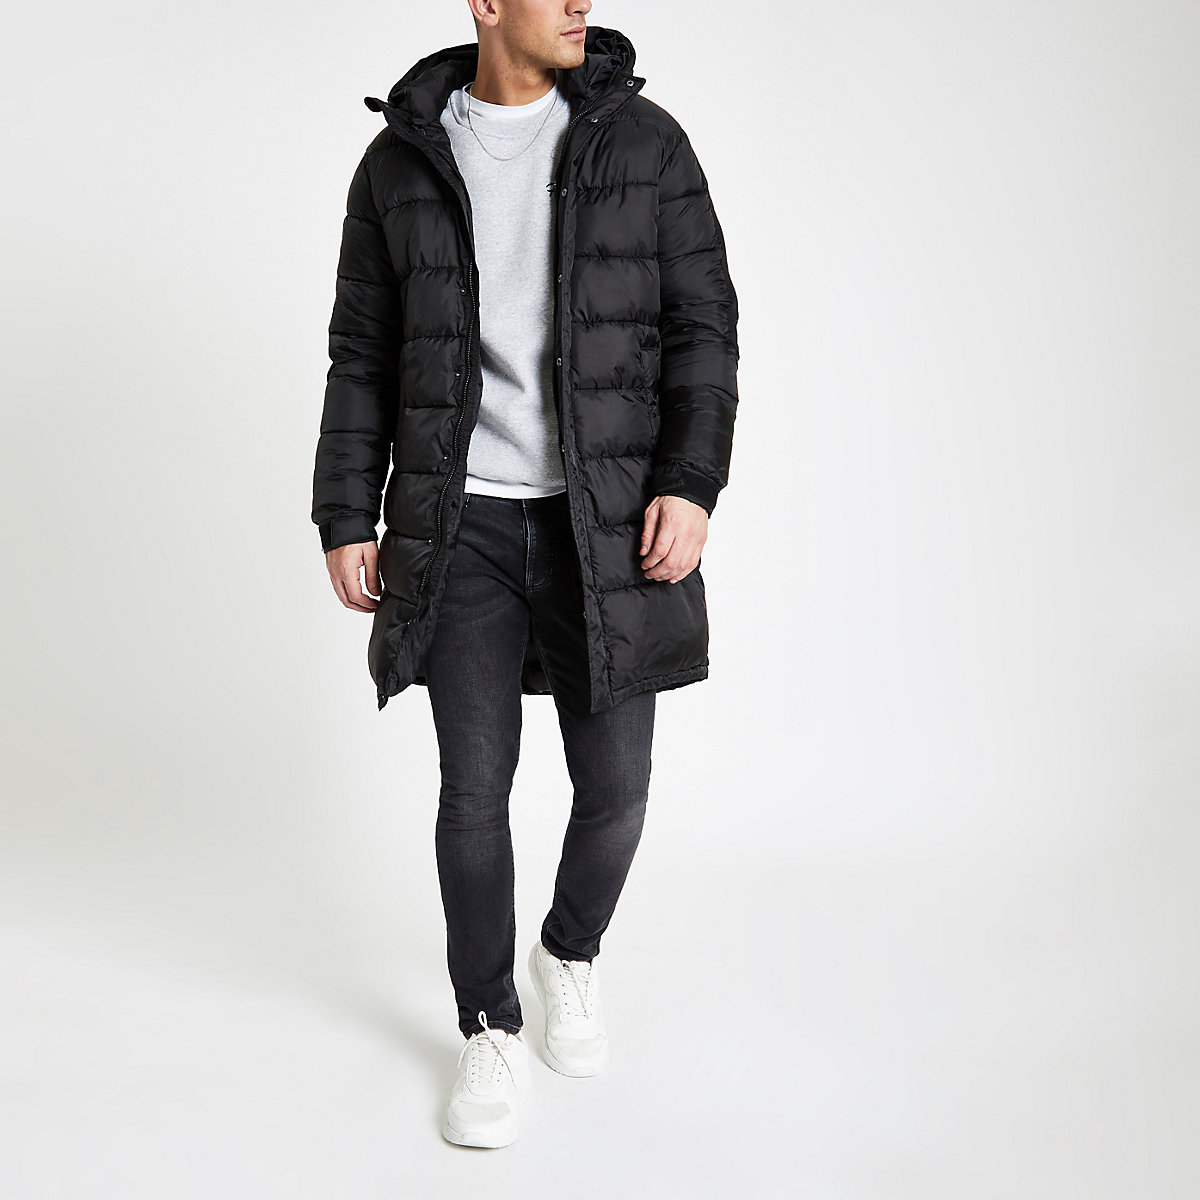 Only & Sons black oversize puffer jacket